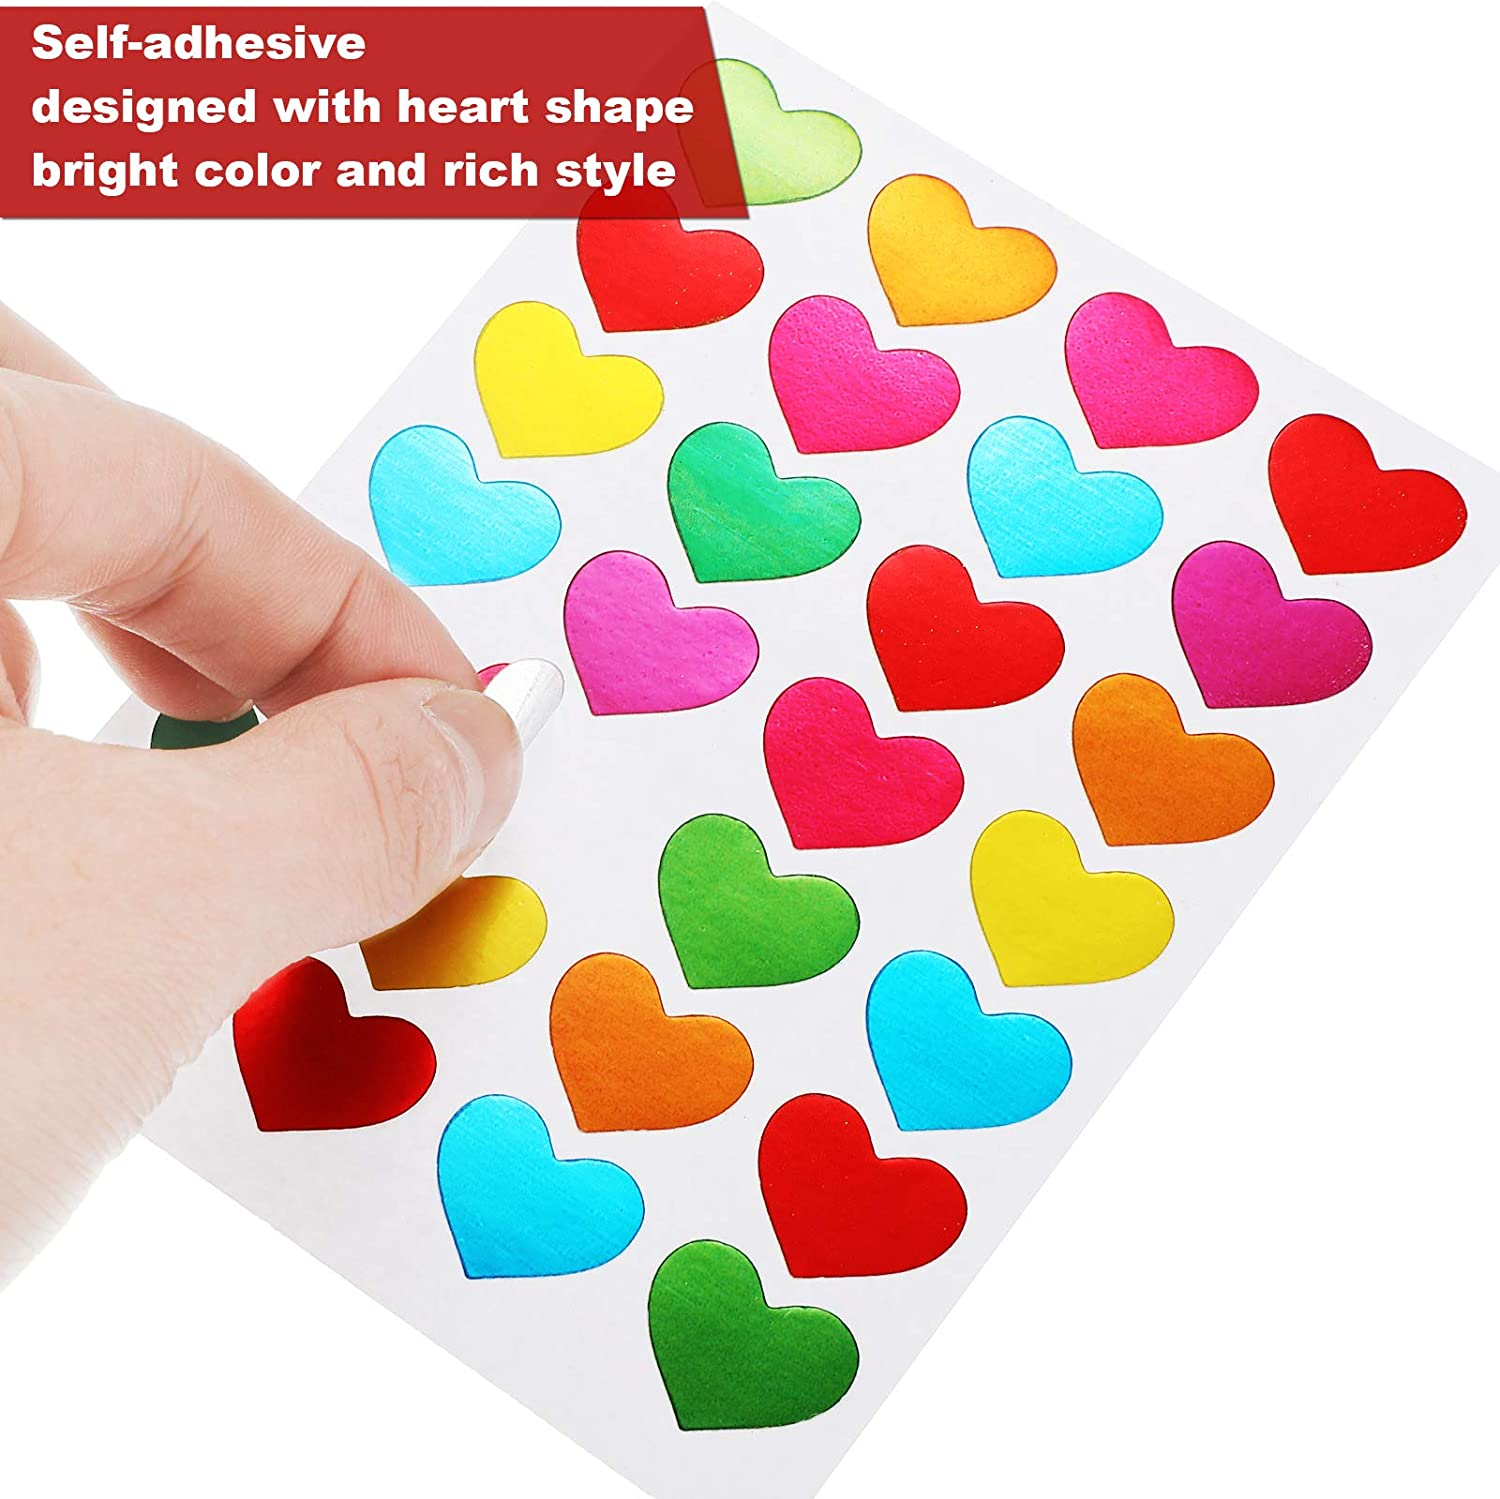 Colorful 140 Sheets Love Heart Stickers Heart Shape Decorative Sticker Glitter Valentines Day Stickers for Happy Valentines Day Decoration Wedding Party Accessories